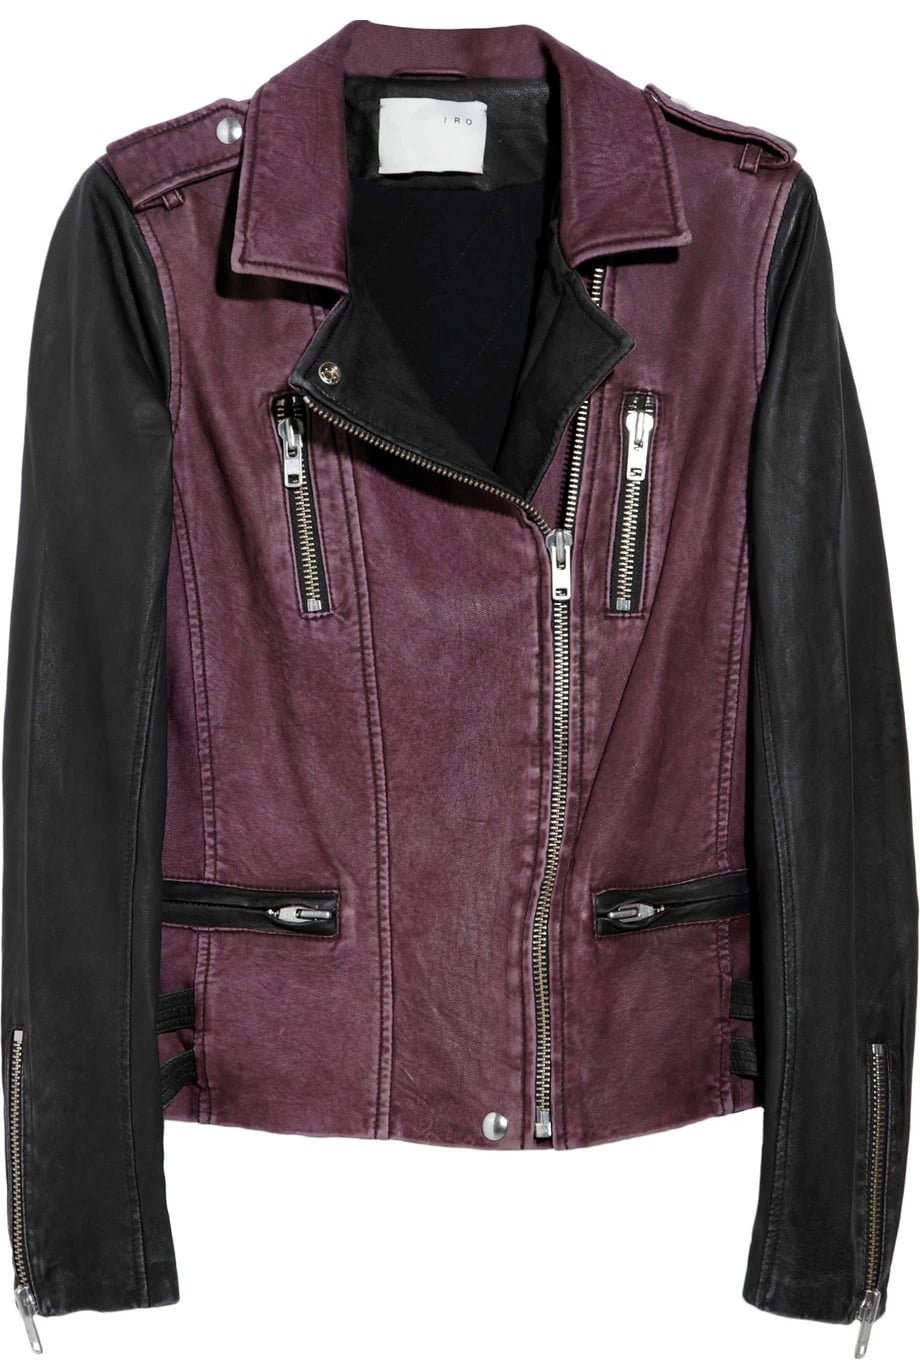 IRO's black and plum leather biker jacket adds the label's signature mix of downtown edge and Parisian chic to off-duty outfits